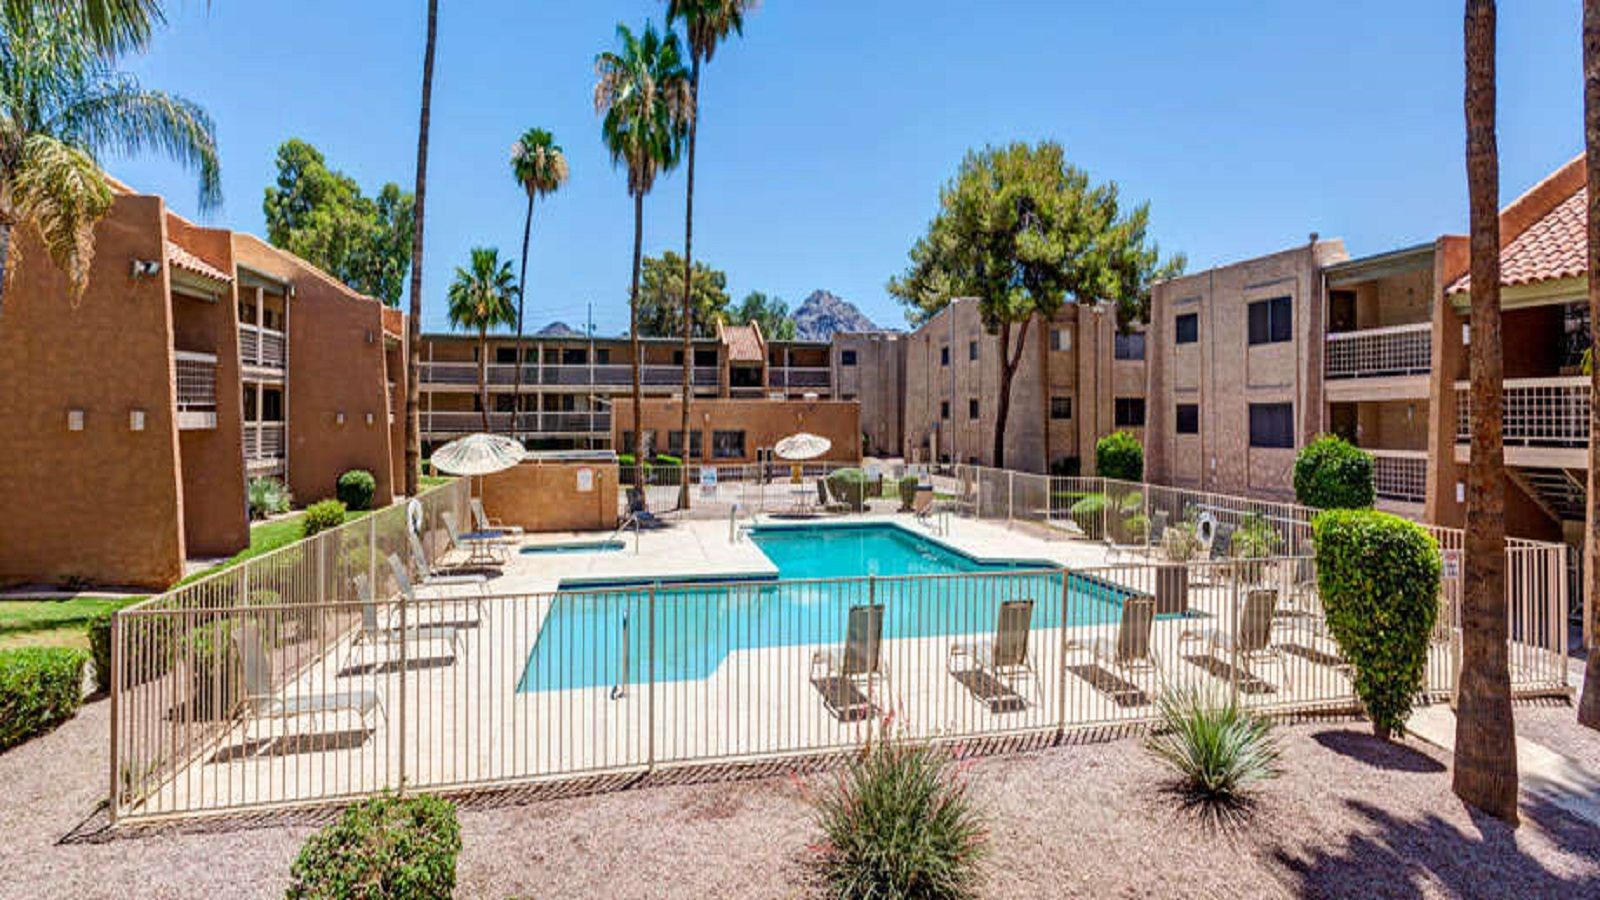 La Mirada Condominiums | 1350 East Northern Avenue, Phoenix, AZ 85020 | 300 Units | Built: 1973 | $15,000,000 | $50,000/Unit | $63.94/SF